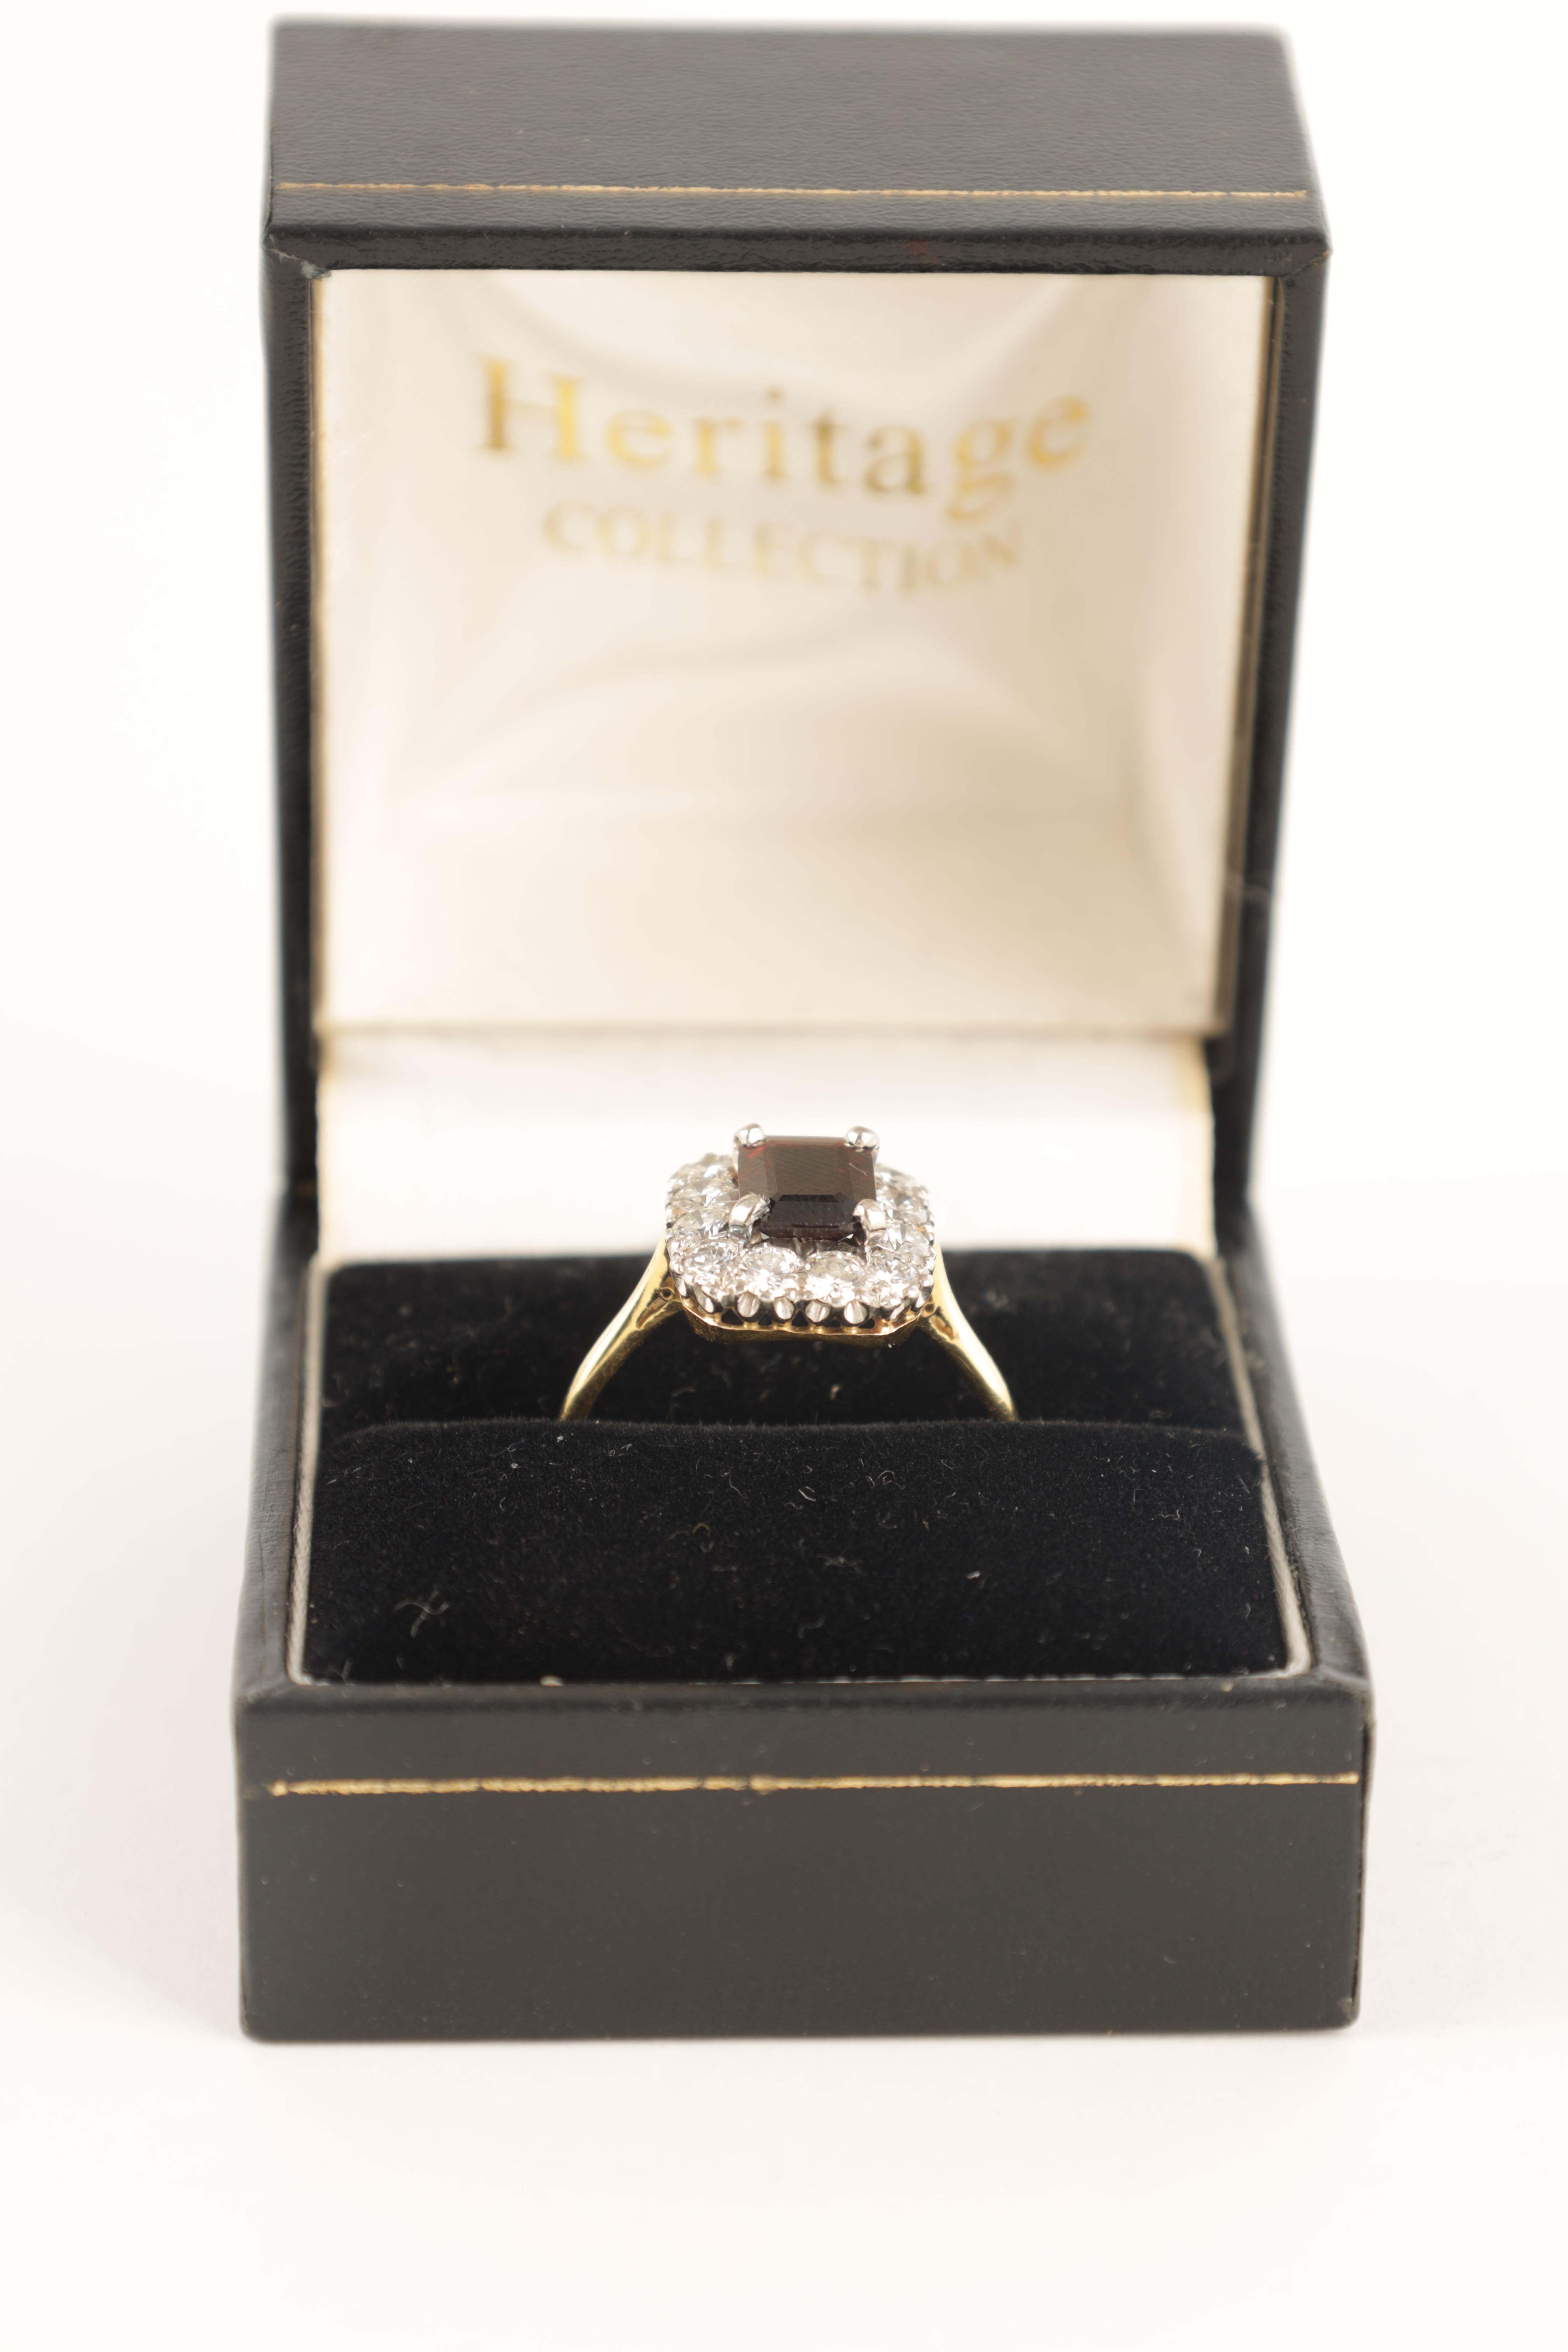 A LADIES 18CT GOLD AND PLATINUM RUBY AND DIAMOND RING with emerald cut ruby surrounded by 12 - Image 2 of 4